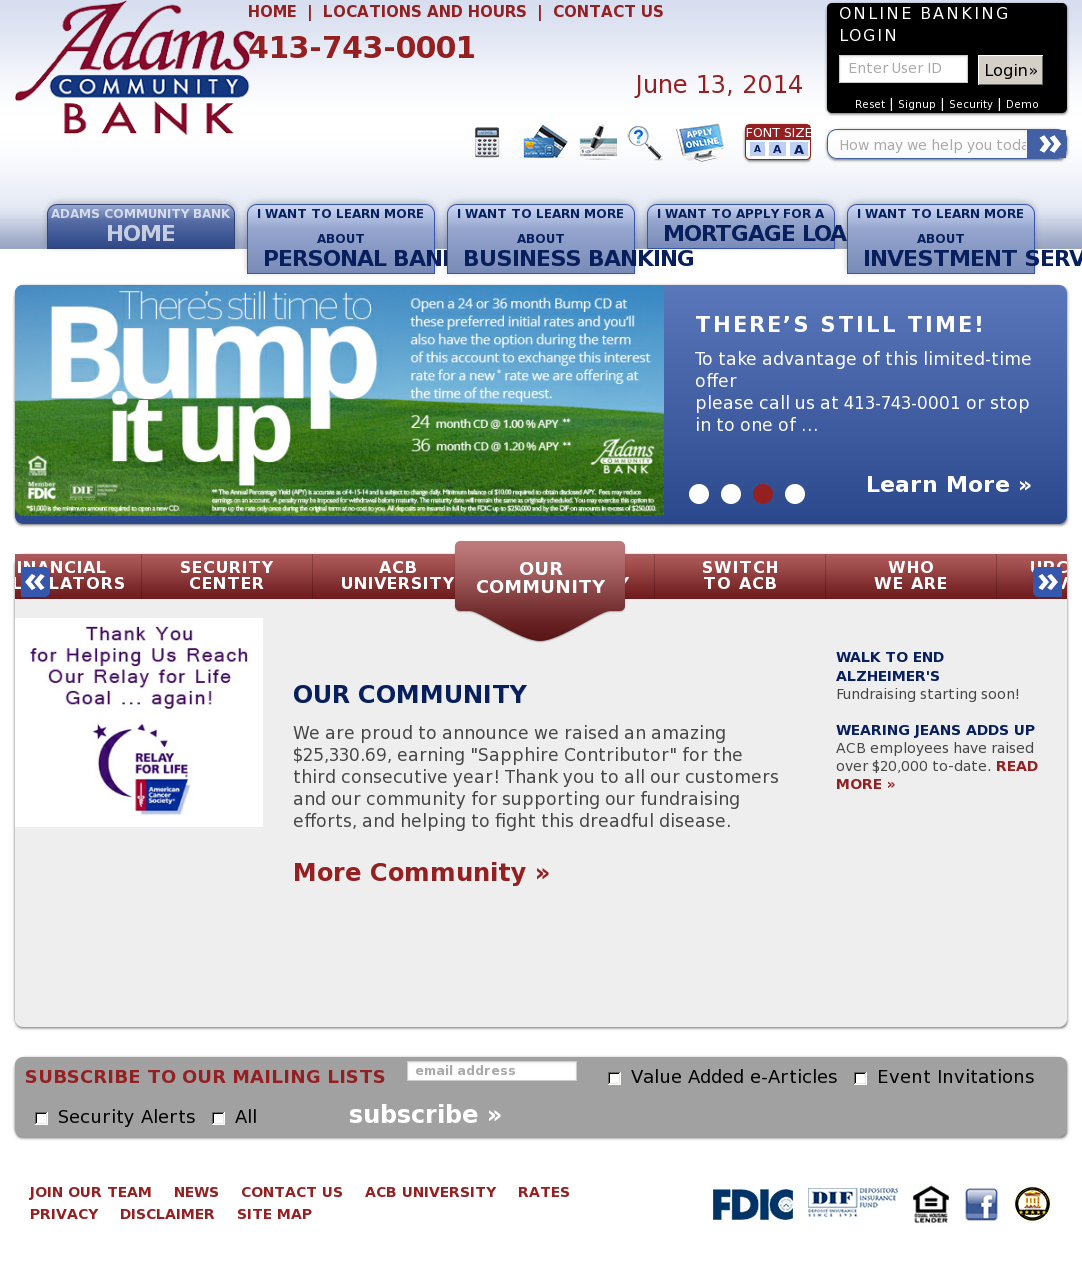 Adams Community Bank Competitors, Revenue and Employees - Owler